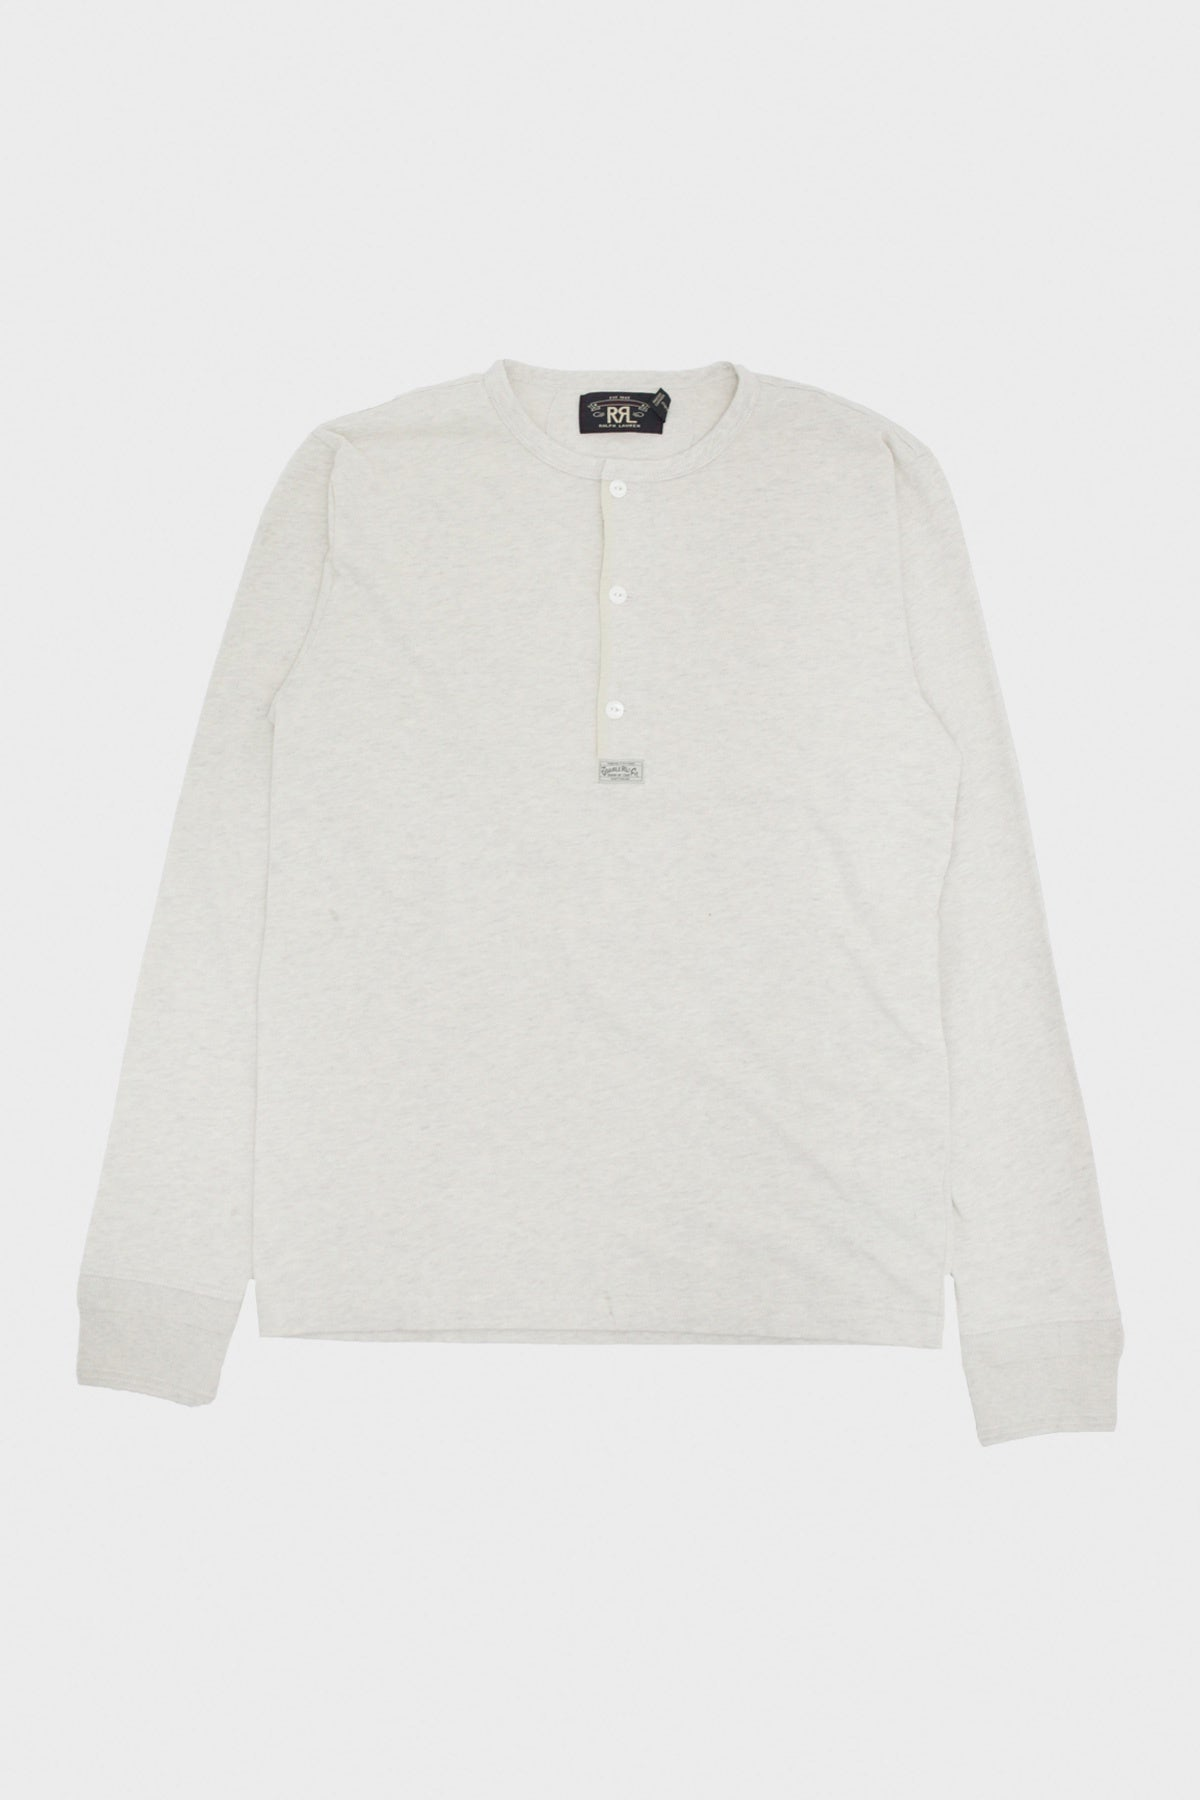 RRL - Cotton Slub Jersey Knit - Natural - Canoe Club